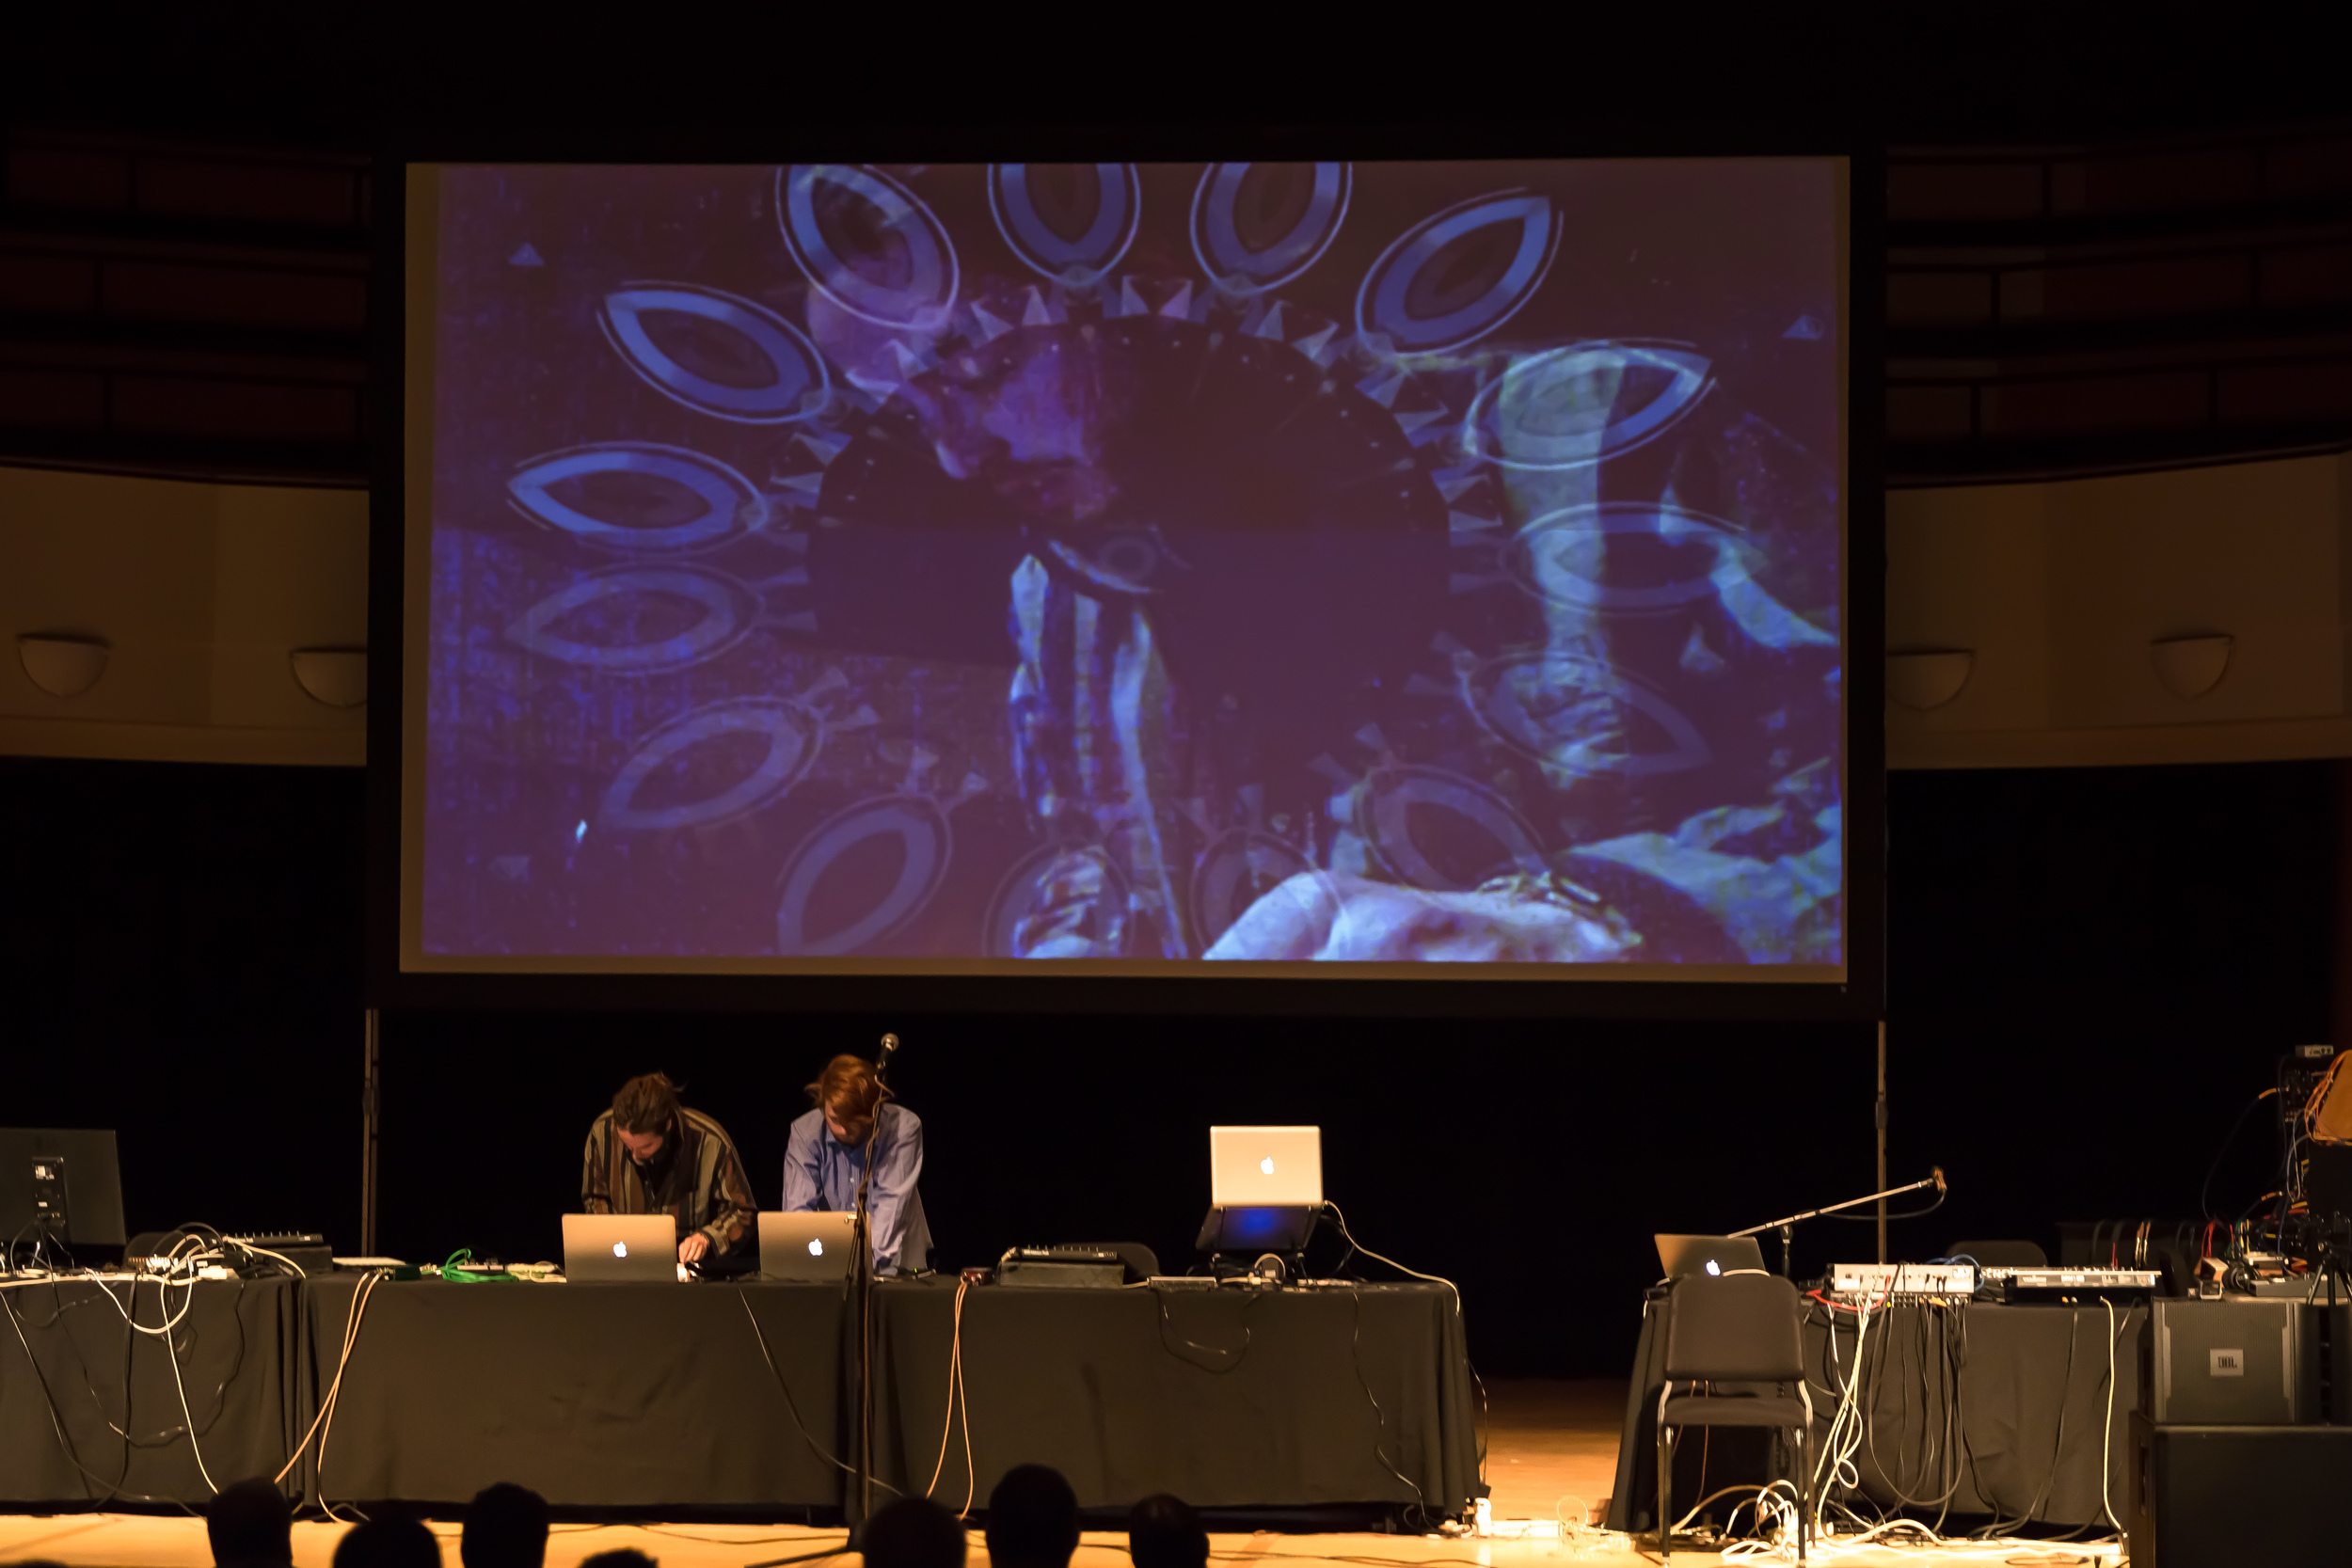 20150319_Art_Gallery_Iron_Pour_Lecture_Electronicatopia_0663.jpg